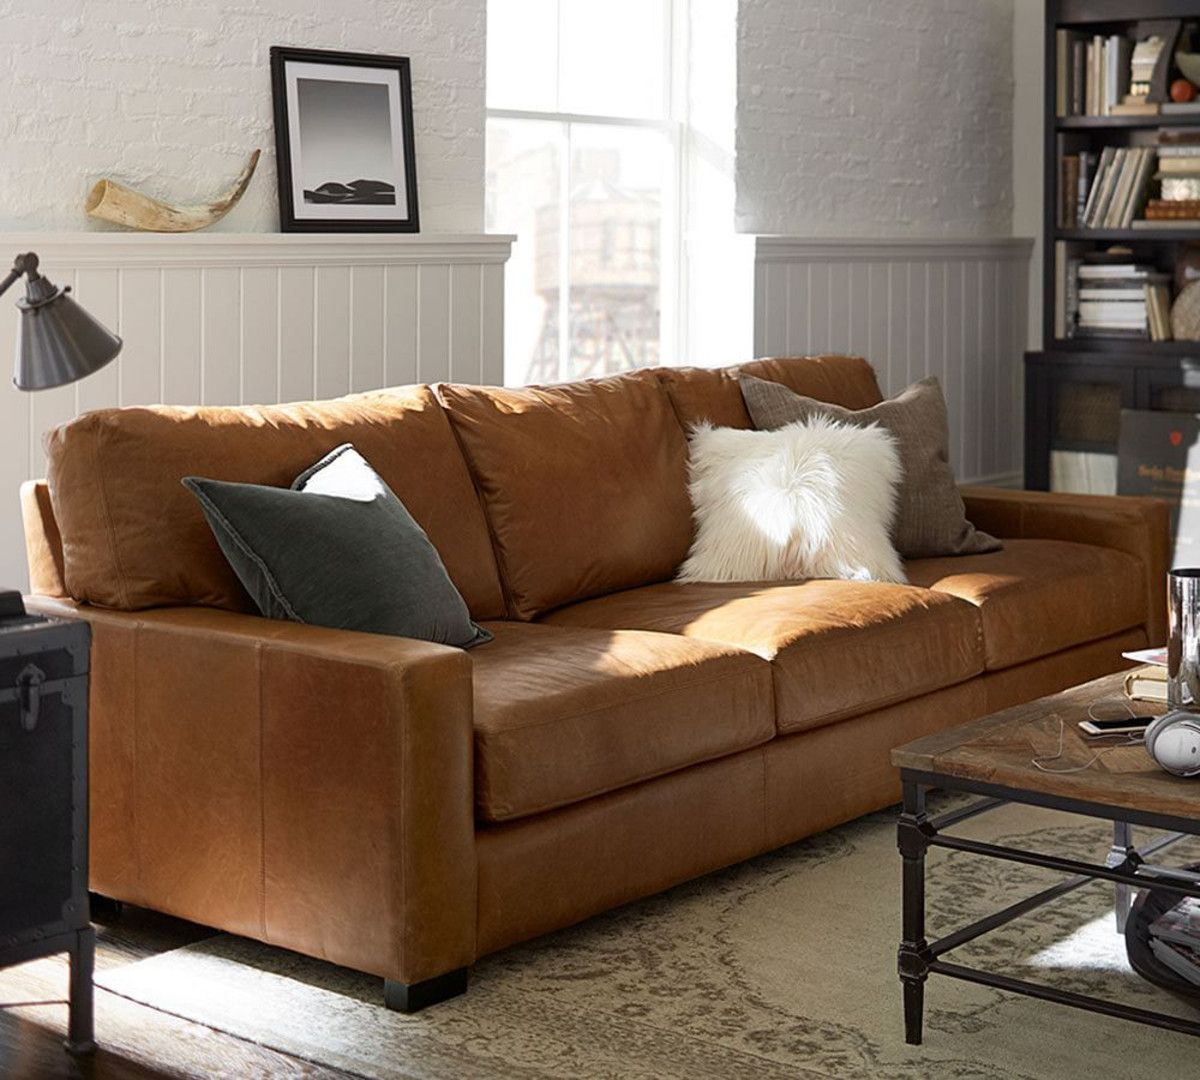 Charmant Turner Square Arm Leather Sofa   Vintage Caramel (217 Cm)